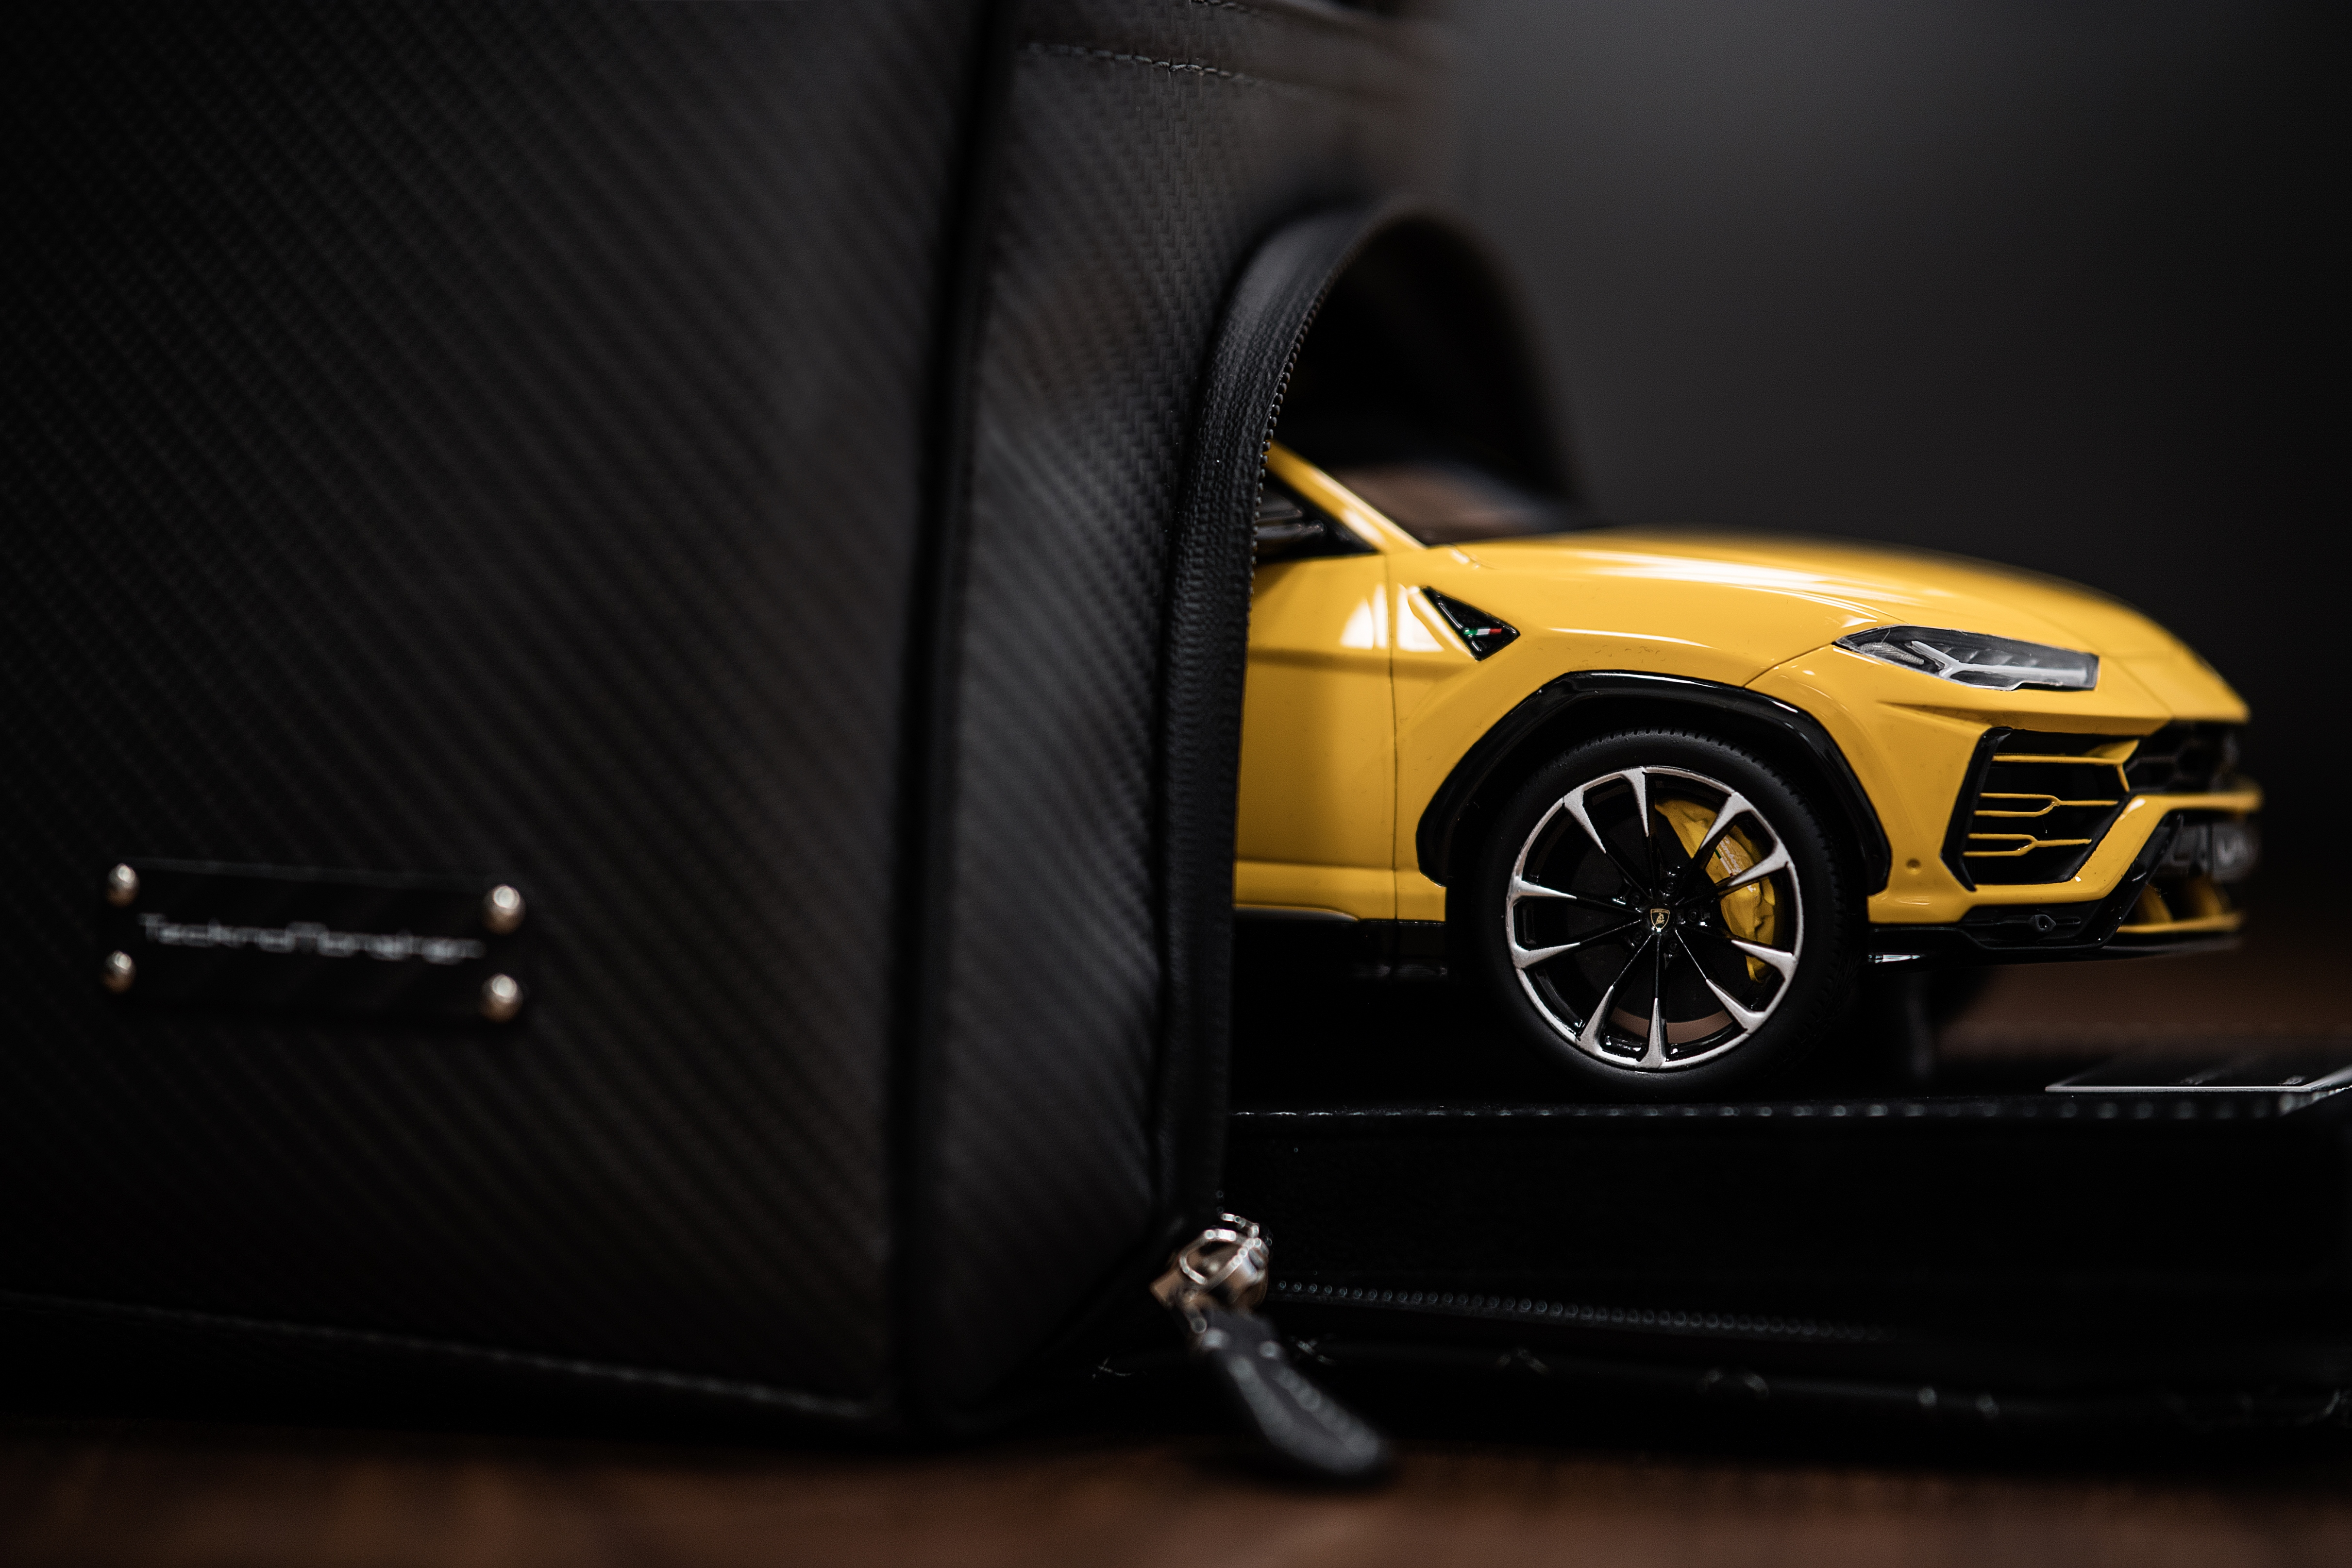 Lamborghini celebrates the Urus Super SUV with a special edition of co-branded personalized collections